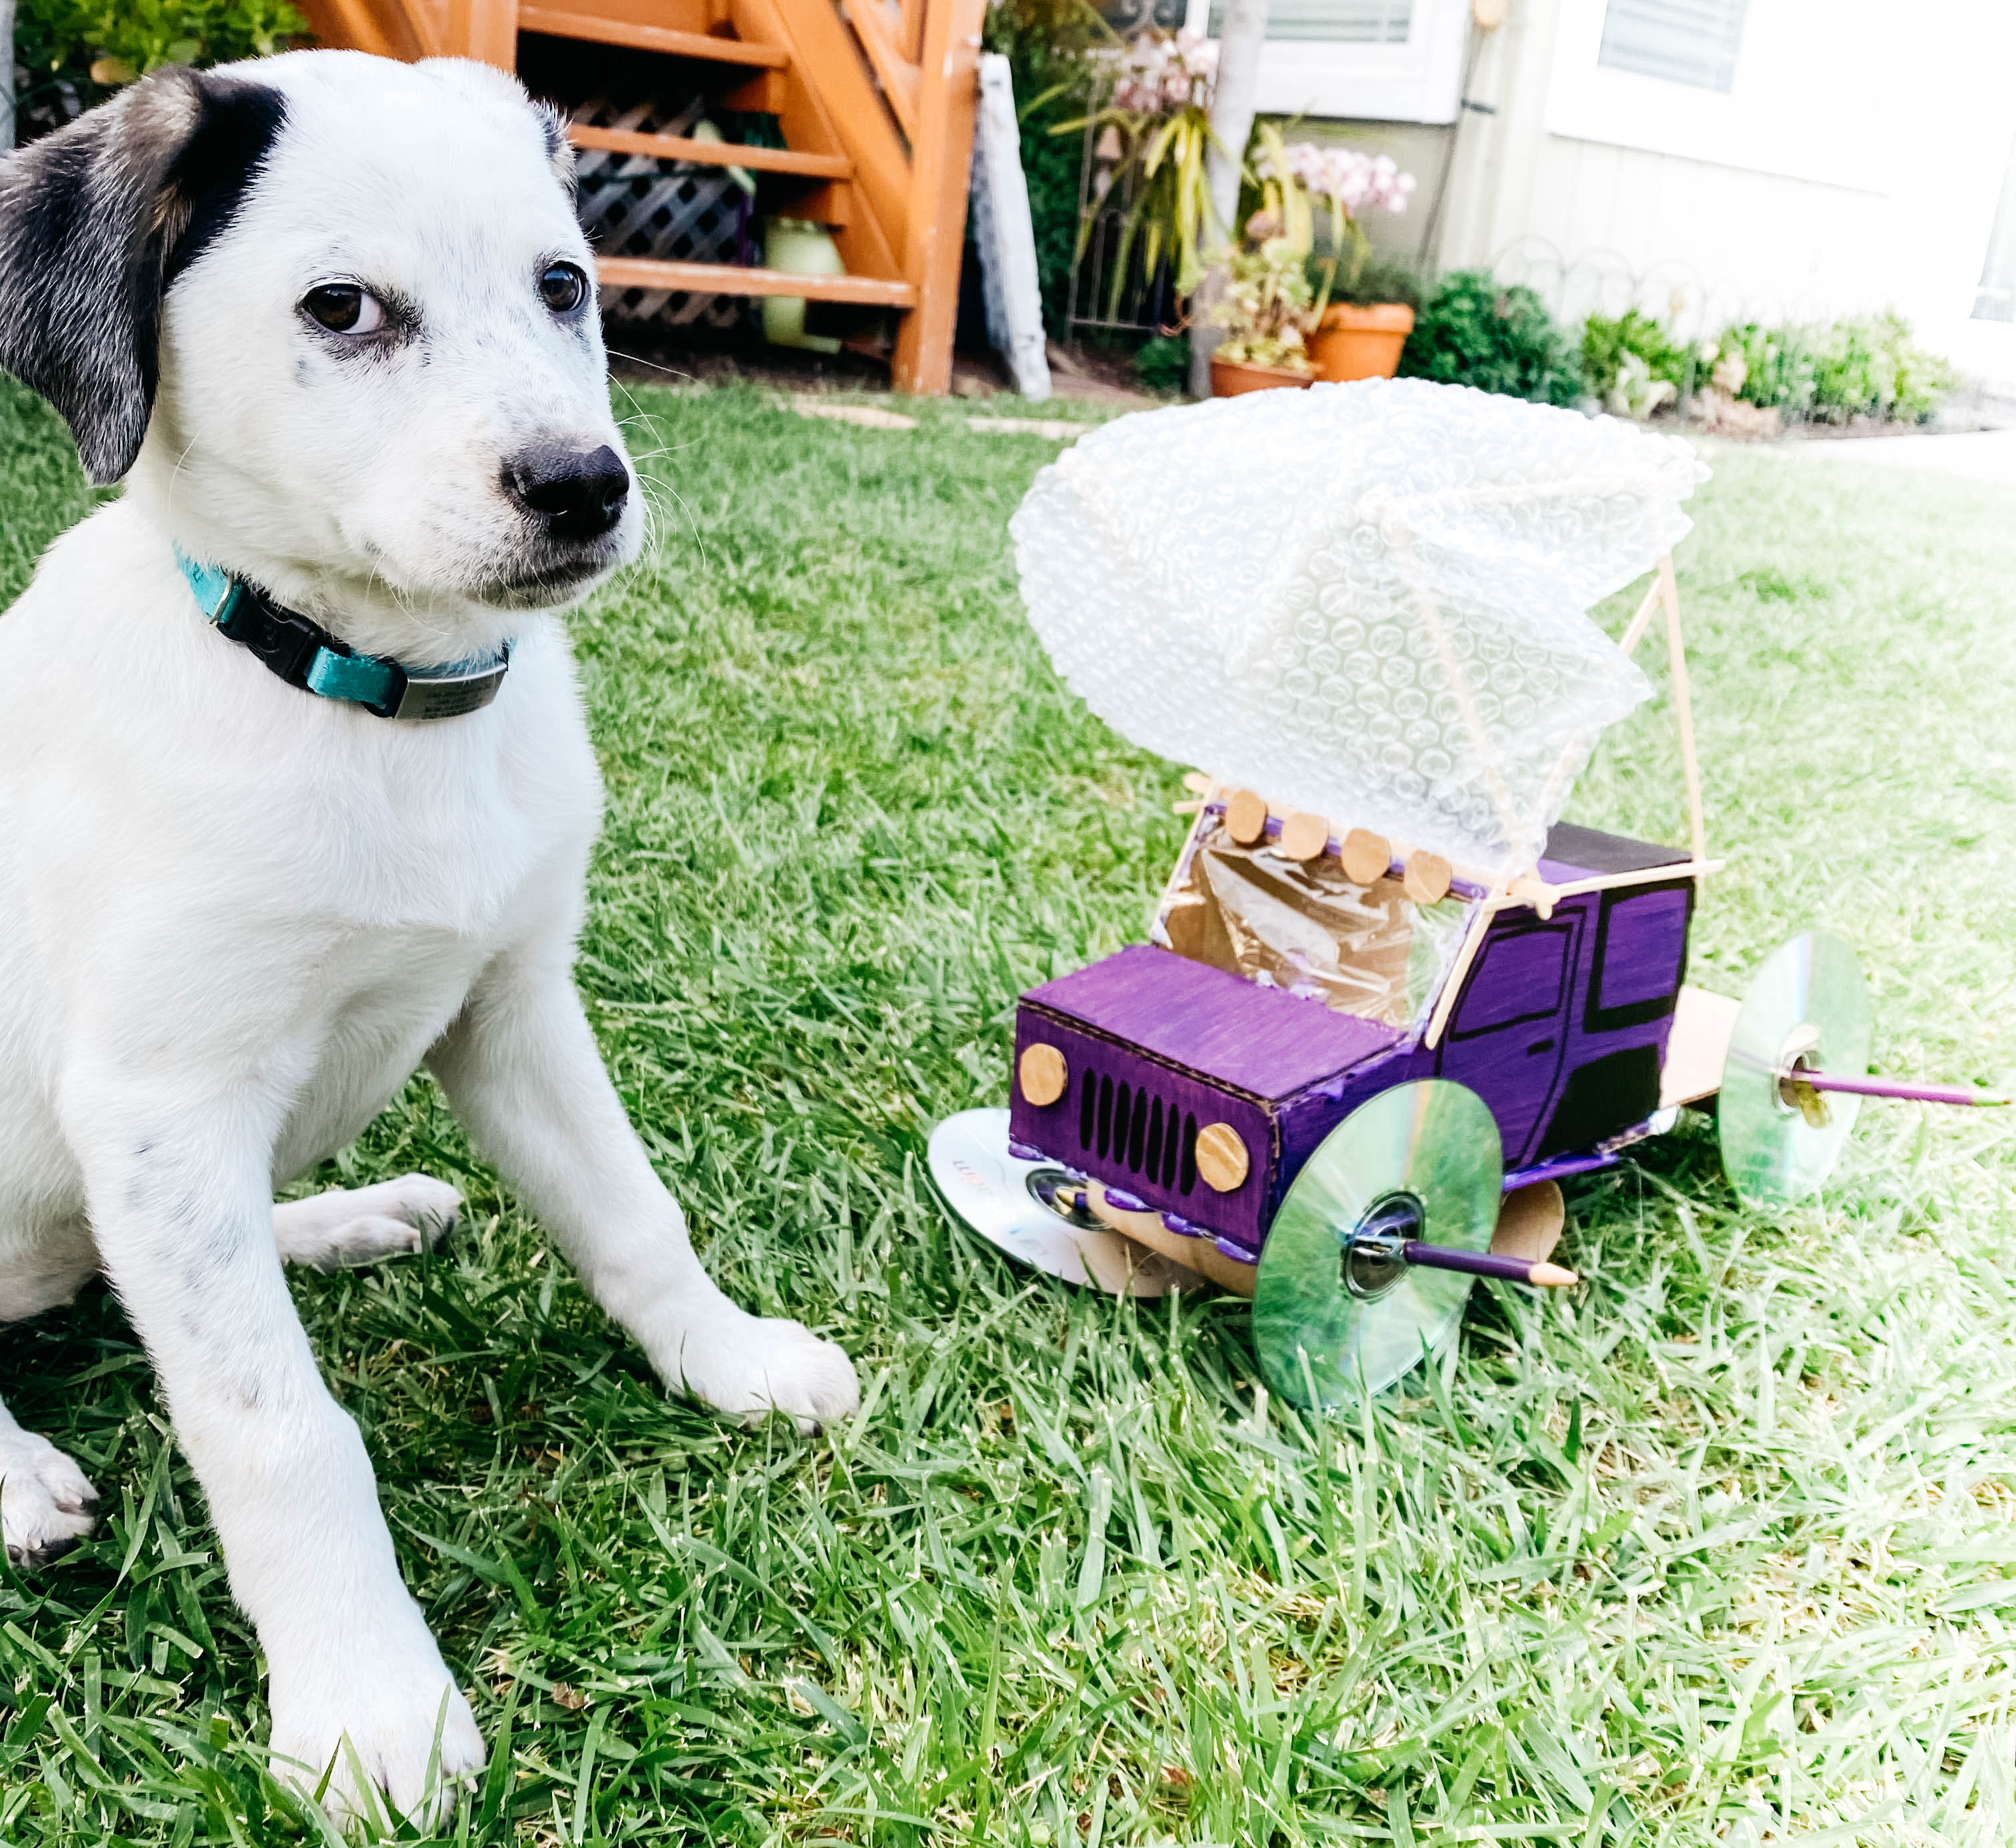 A puppy sits next to a wind-powered delivery device.